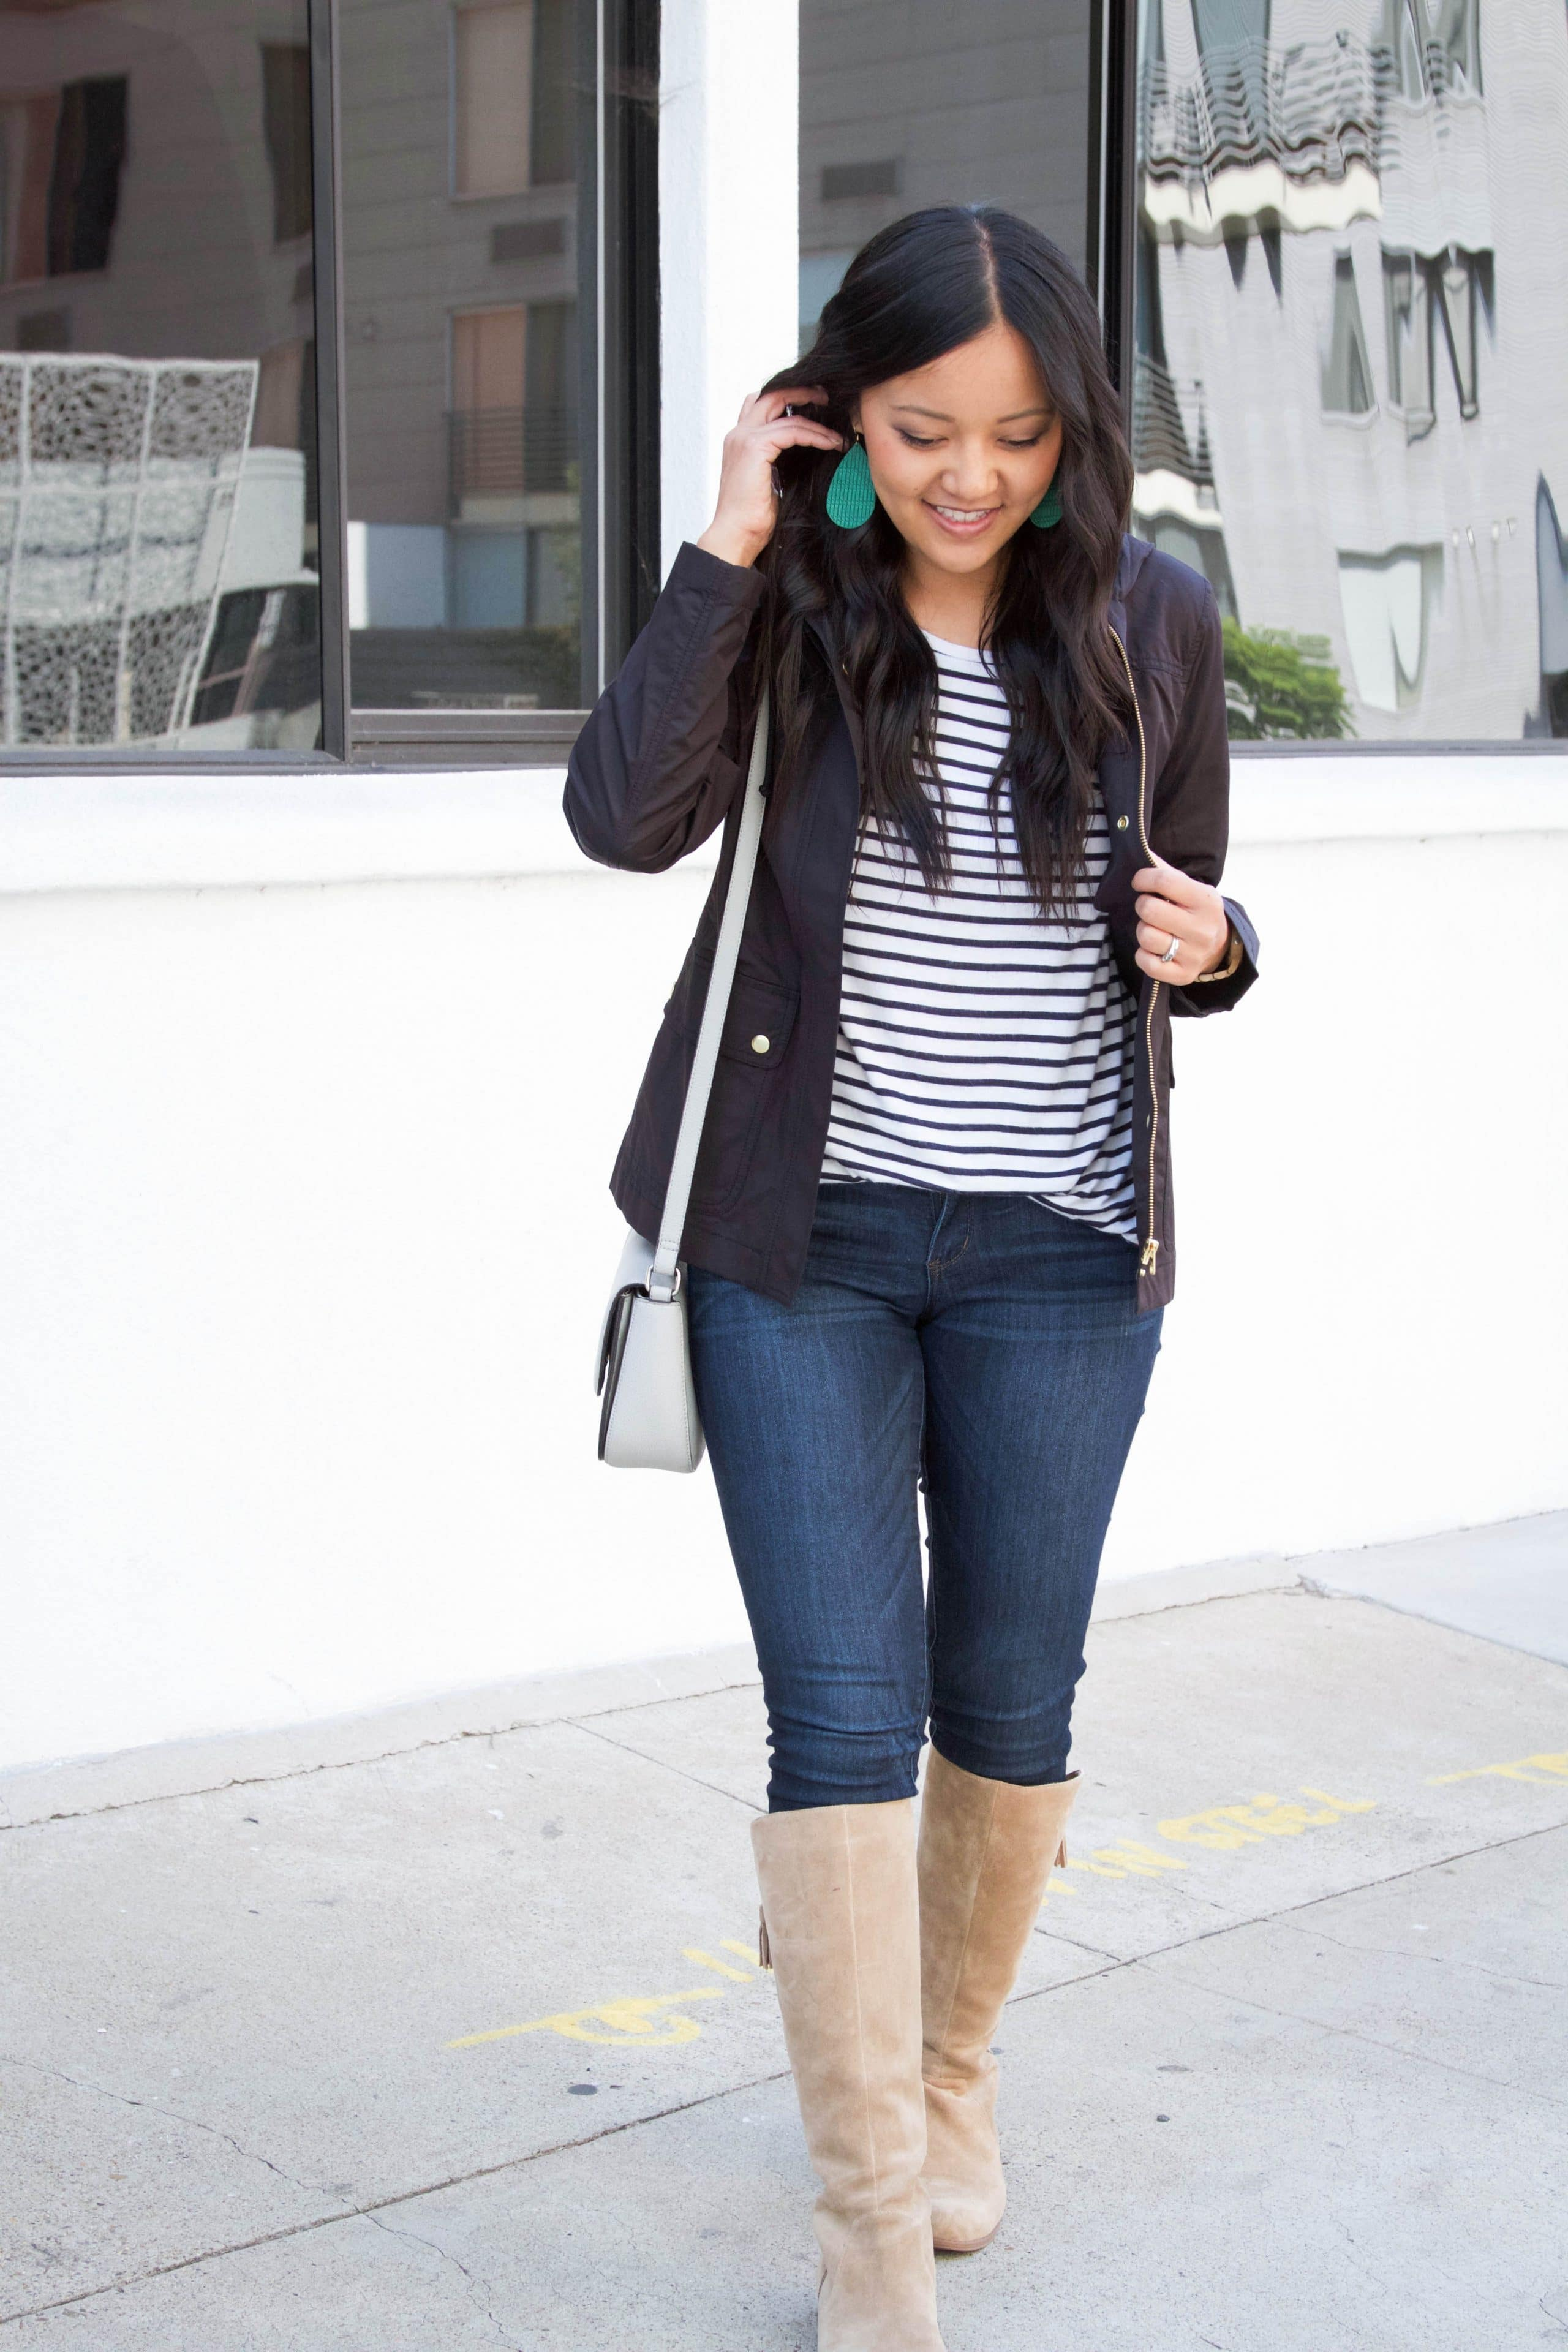 Striped Tee + Black Jacket + Skinnies + Boots + Green Earrings